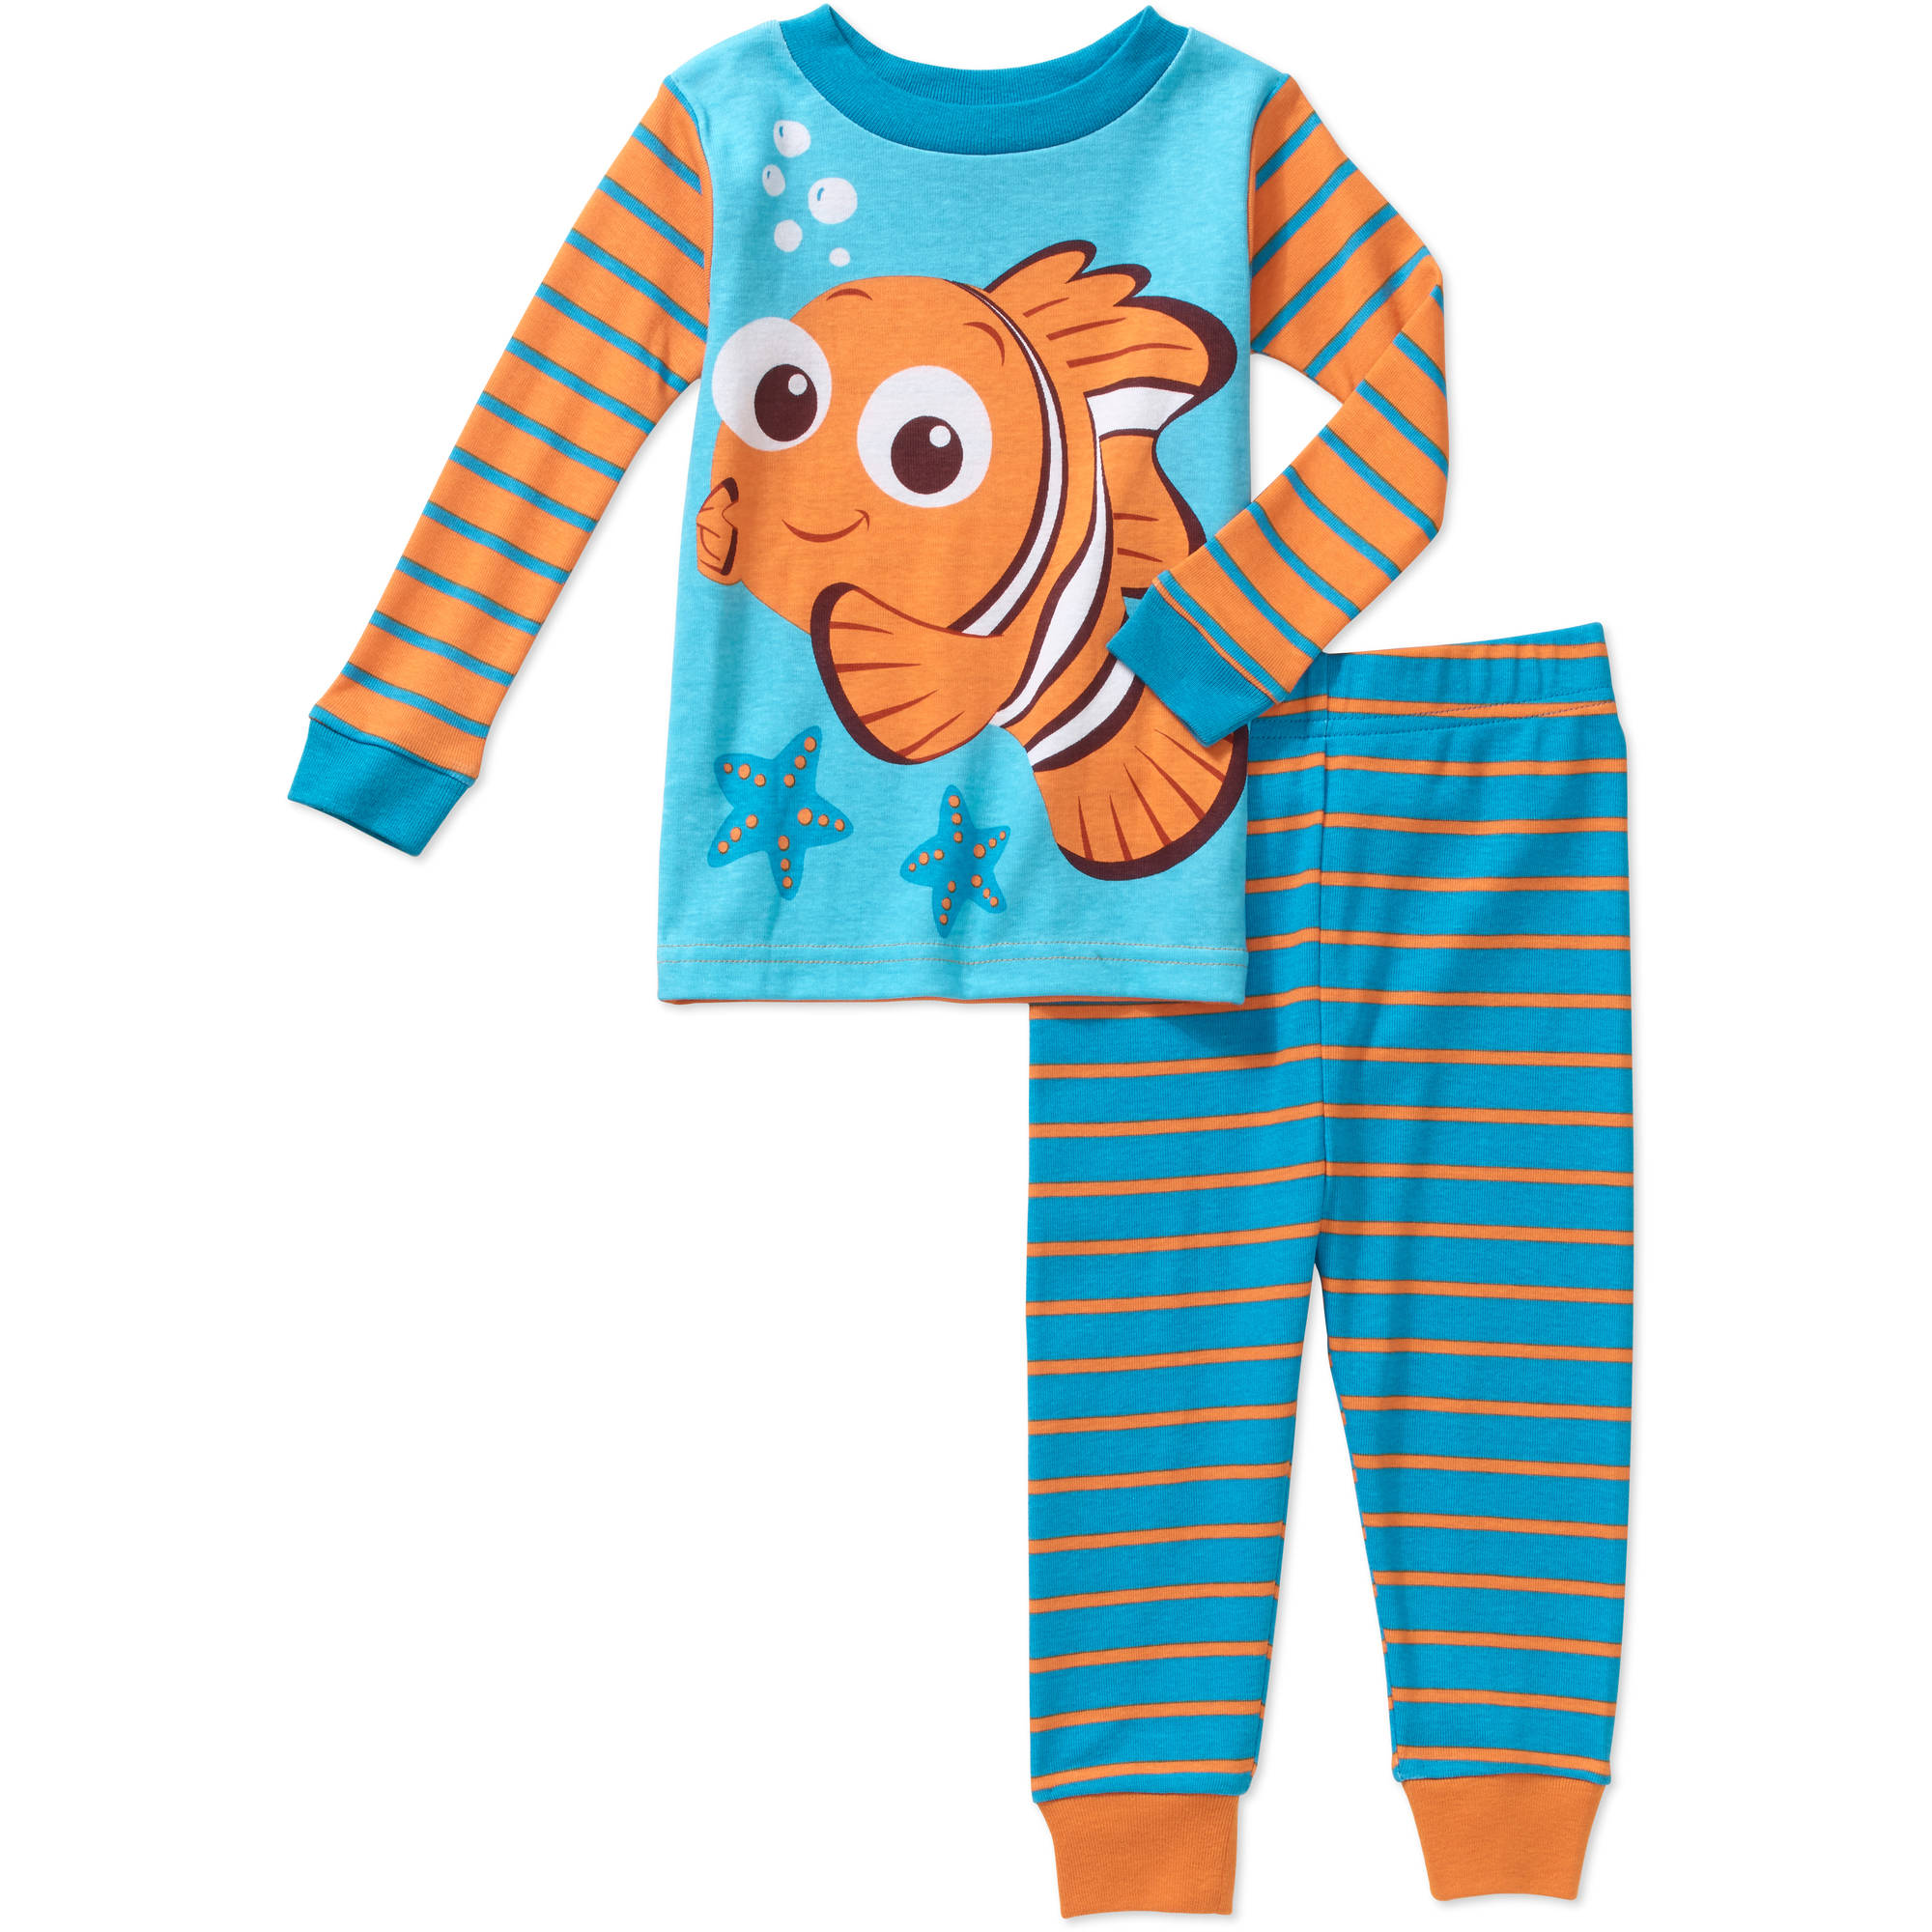 Finding Nemo Newborn Baby Boy Cotton Tight Fit Pajamas 2pc Set